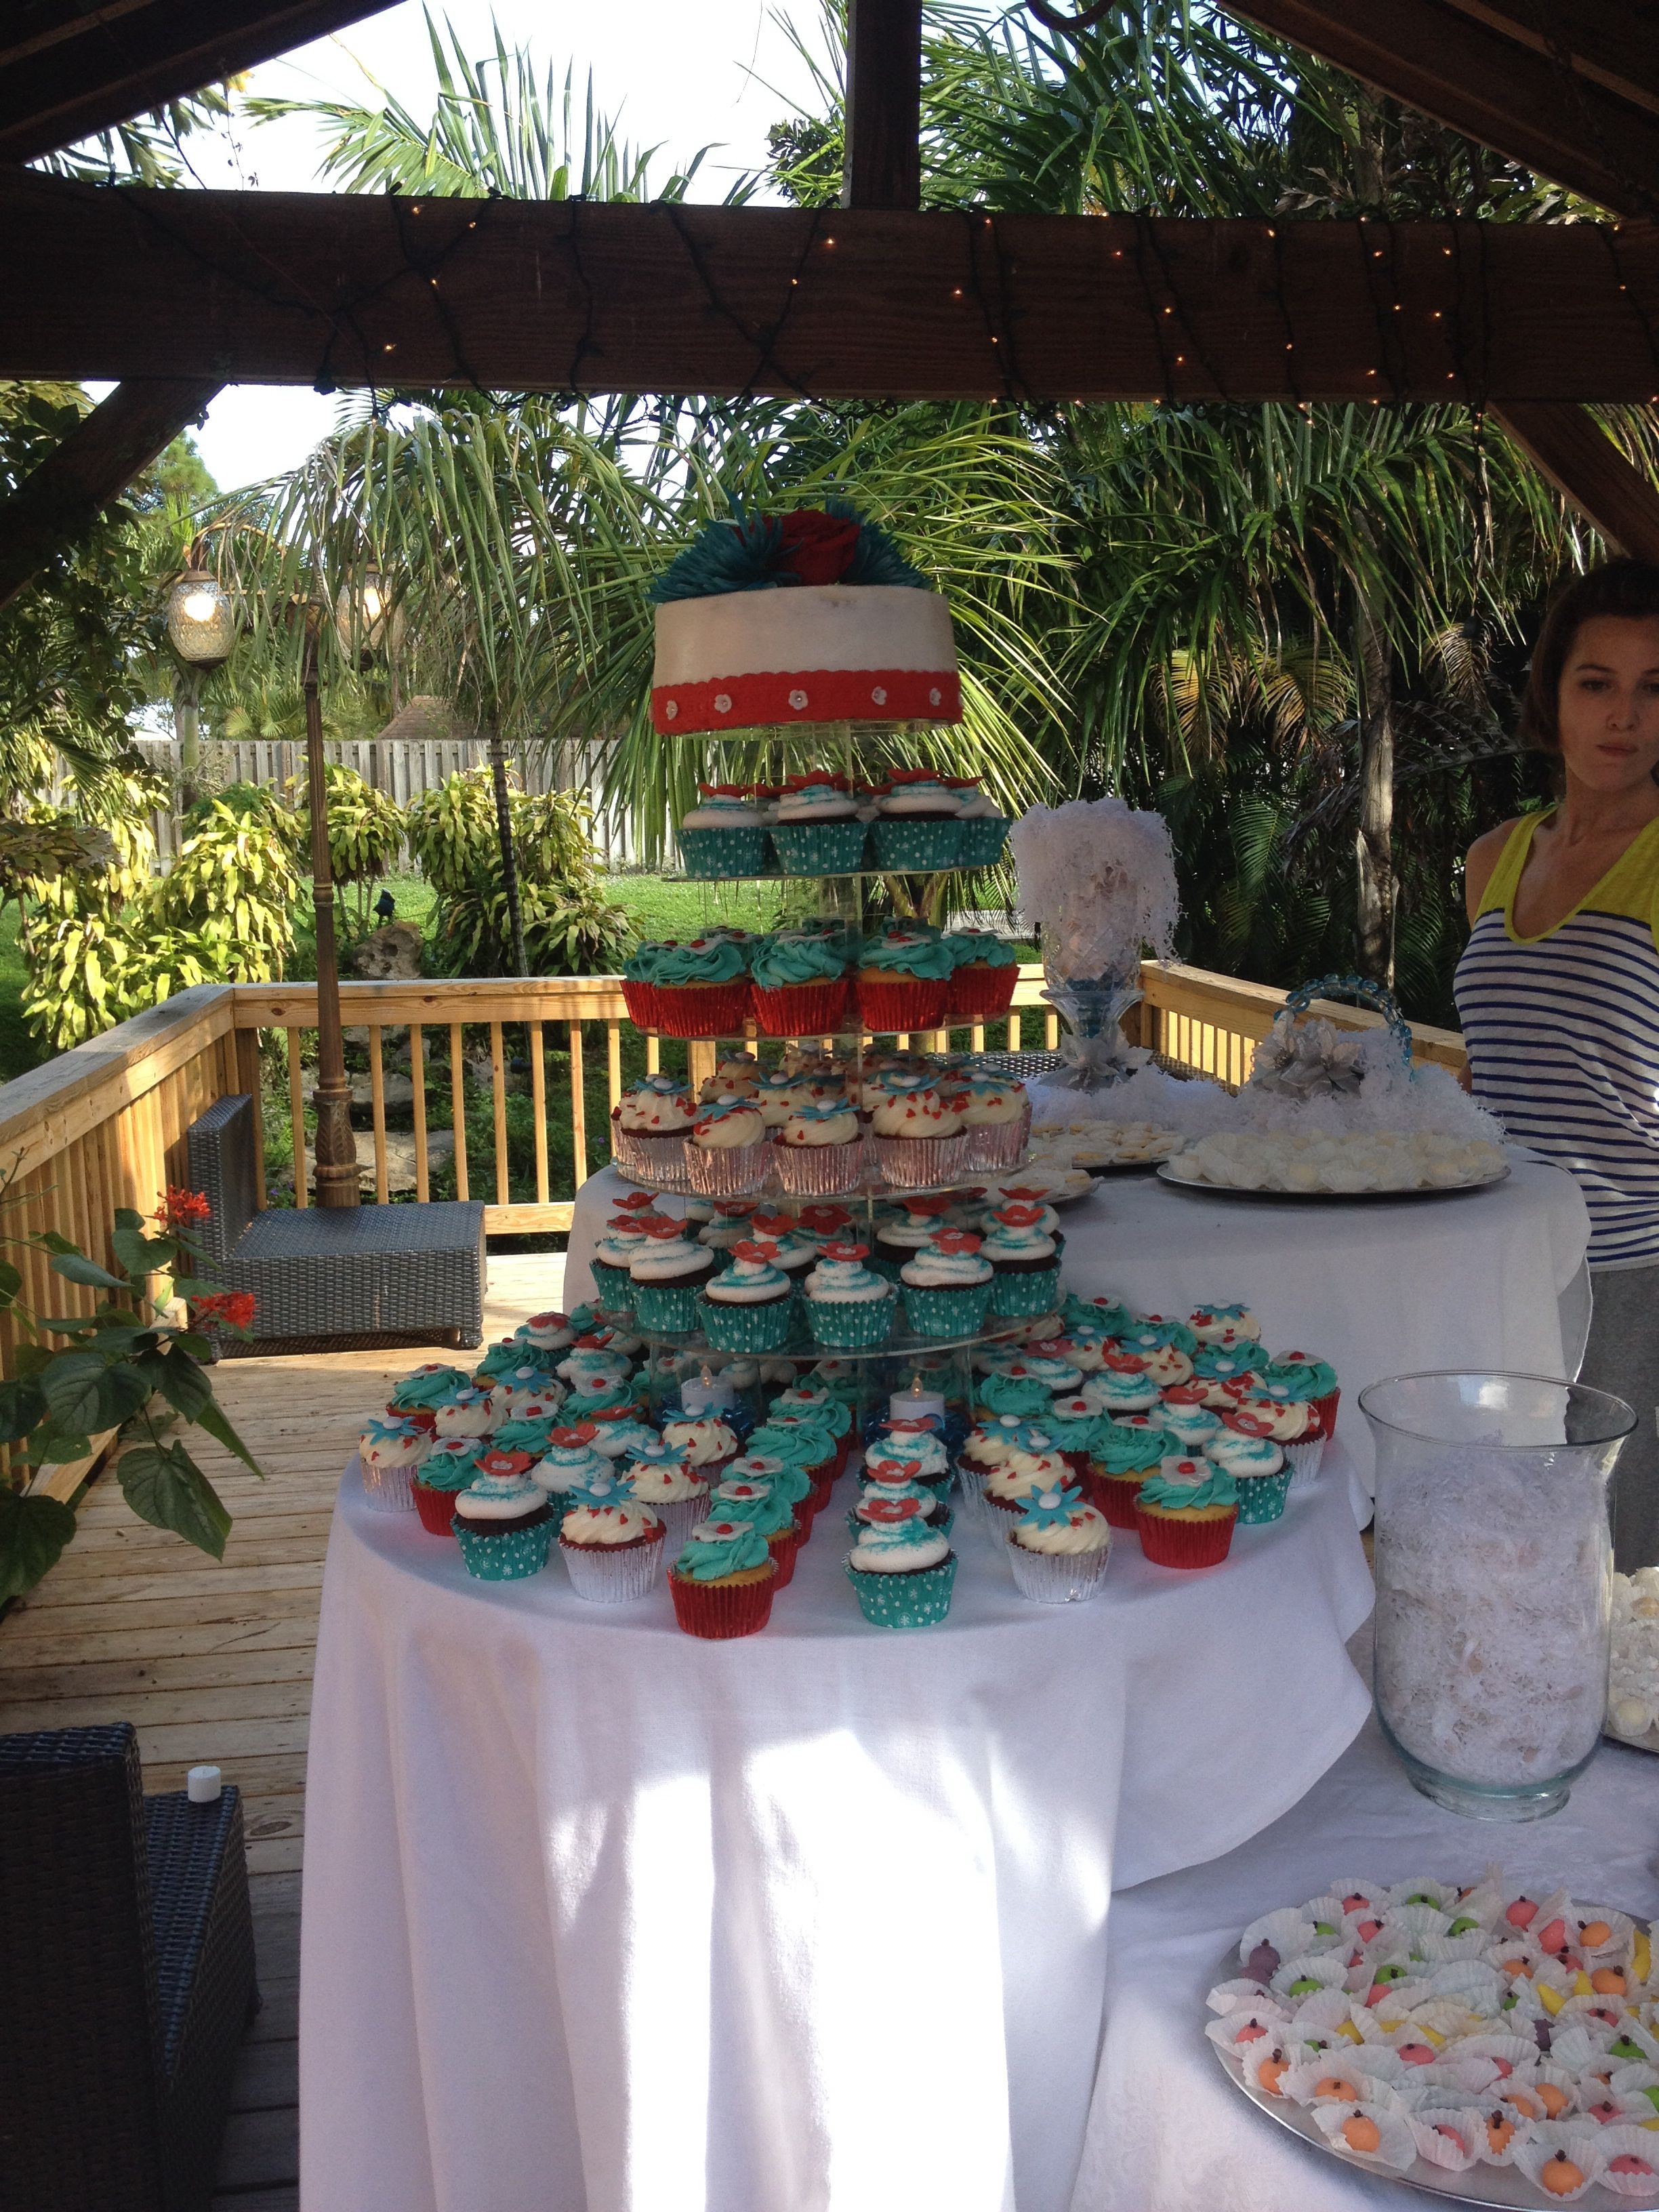 Teal, silver and red wedding